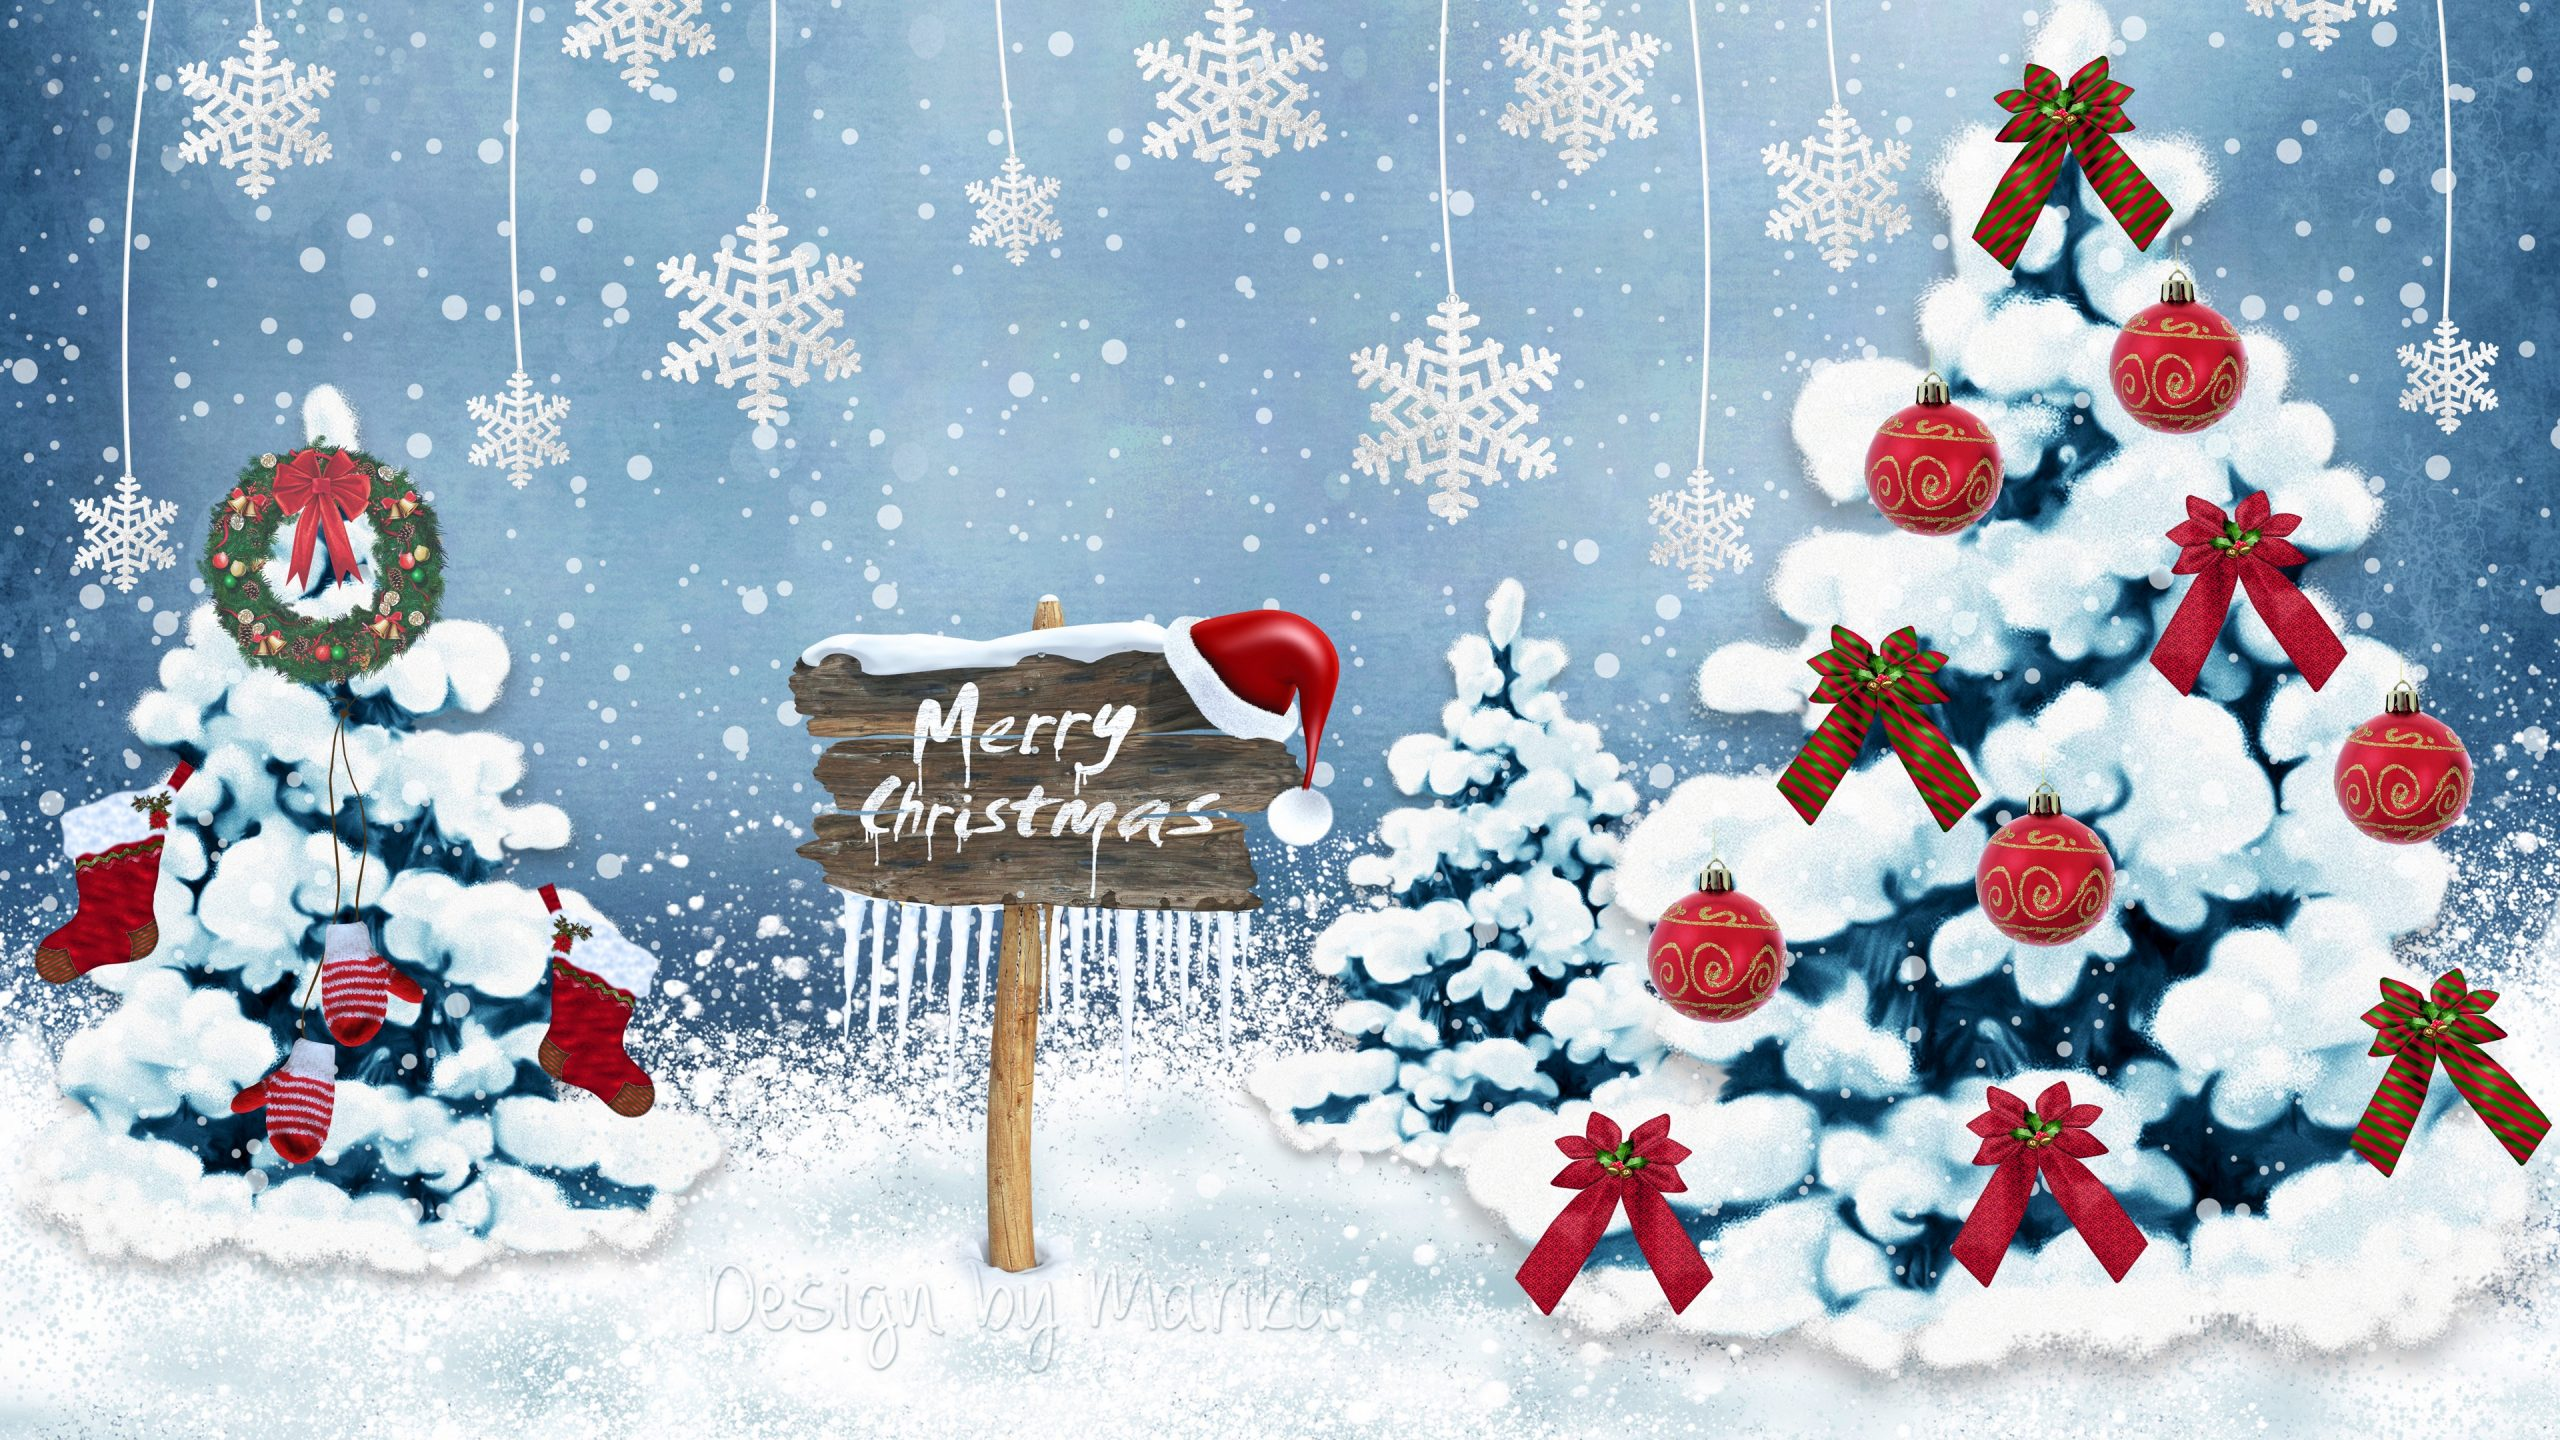 Happy Merry Christmas 2019 Wallpapers